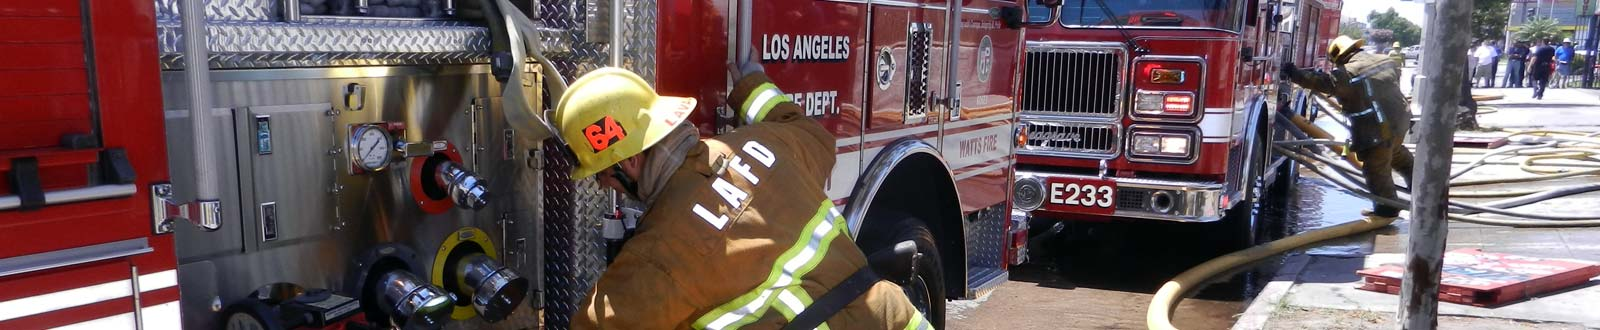 LAFD Firefighter with truck